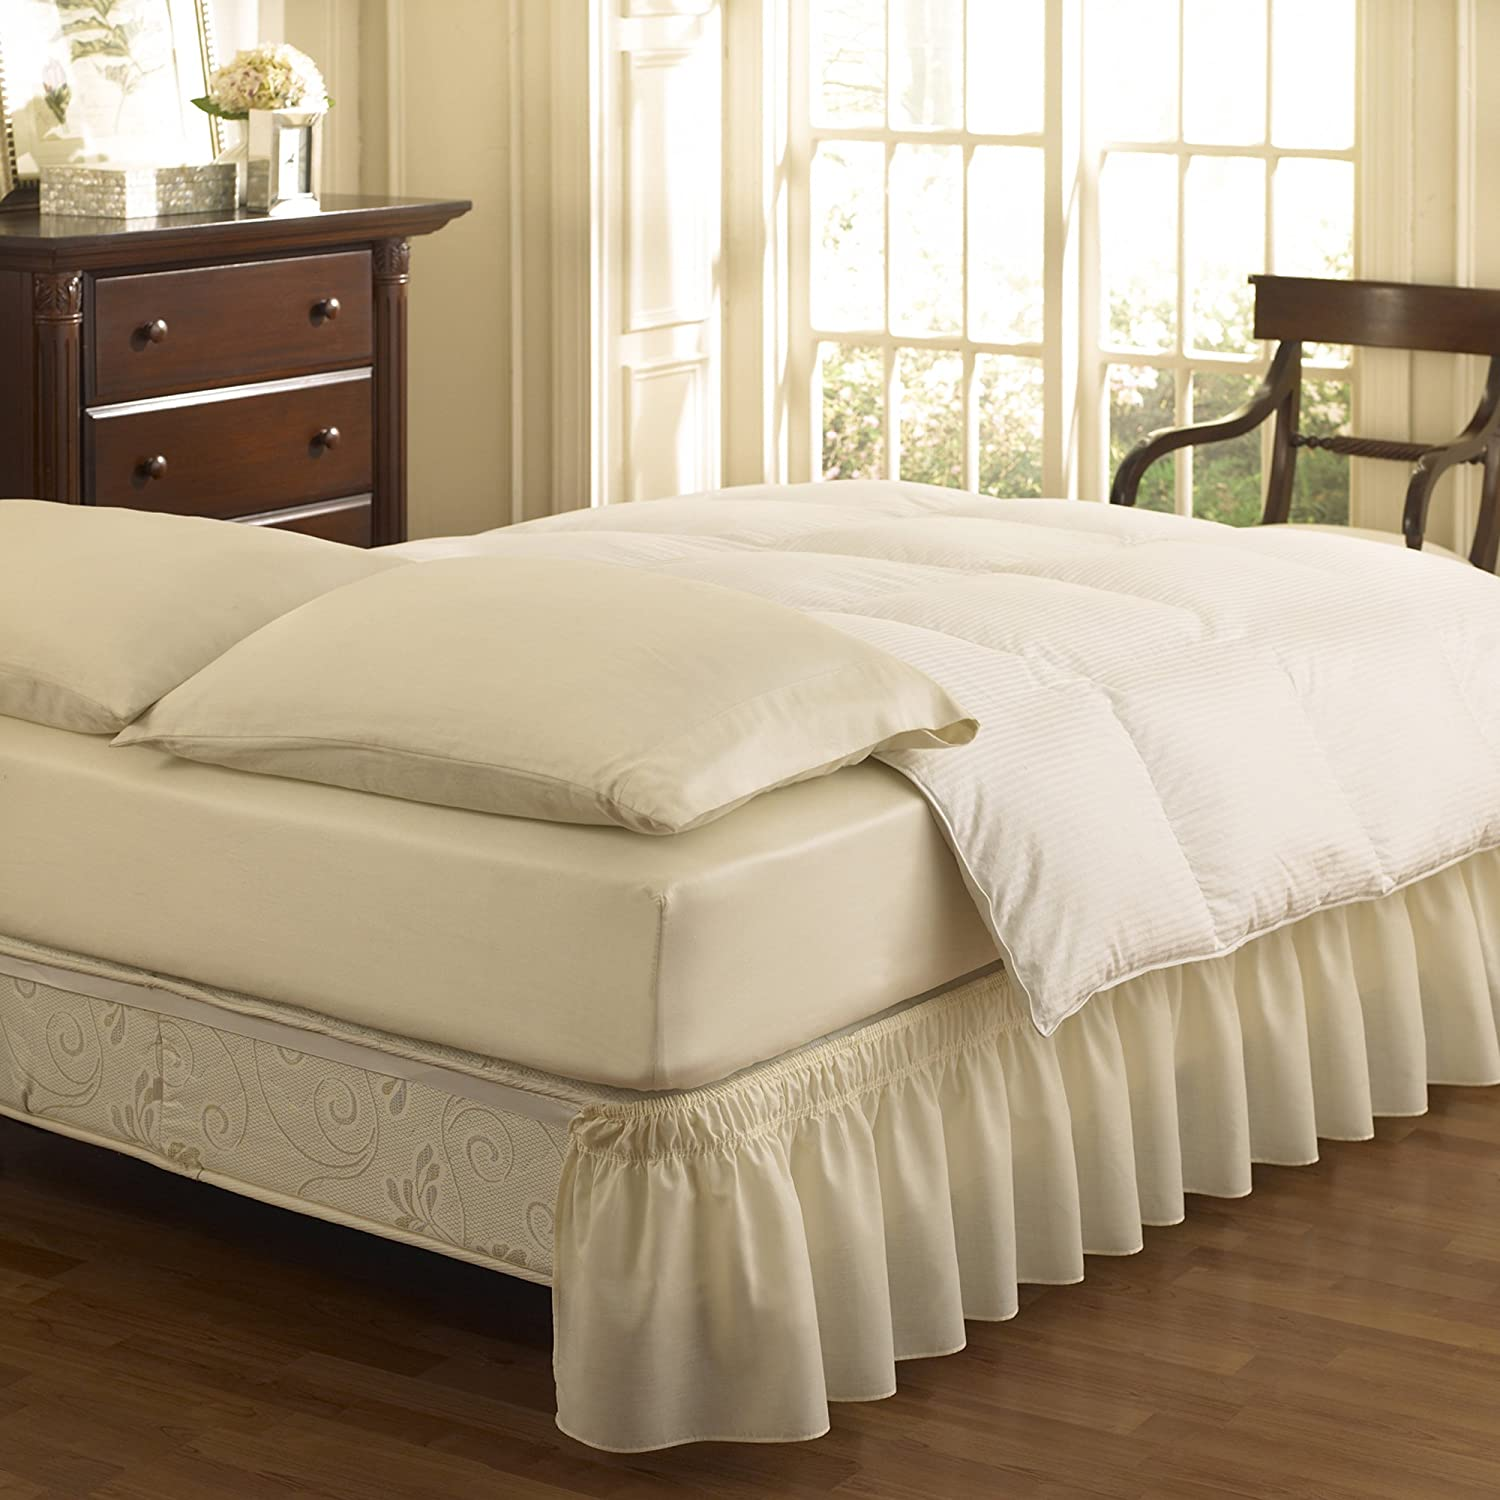 Easy Fit 11577QUEEN/KINGIV Wrap Around Solid Ruffled Queen/King Bed Skirt 80-Inch by 60-Inch with 18-Inch drop, Ivory Ellery Homestyles